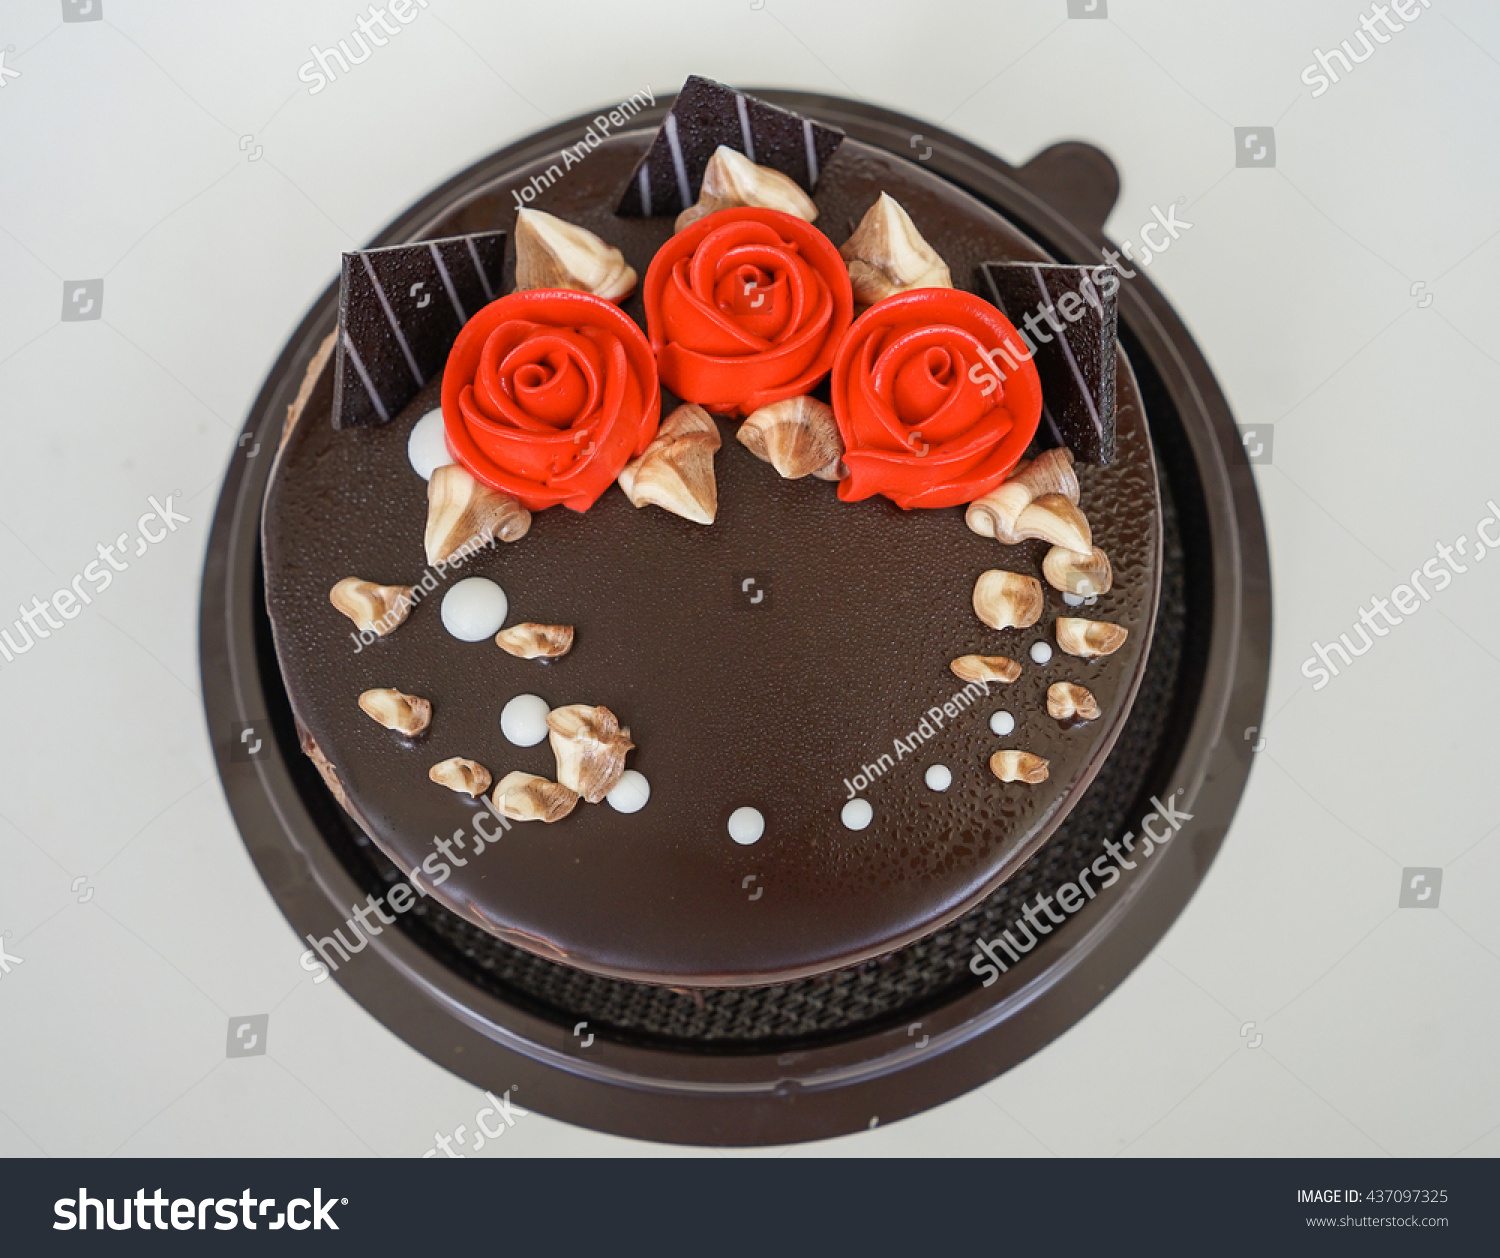 Beautiful chocolate birthday cake edible red stock photo edit now a beautiful chocolate birthday cake with edible red rose flowers izmirmasajfo